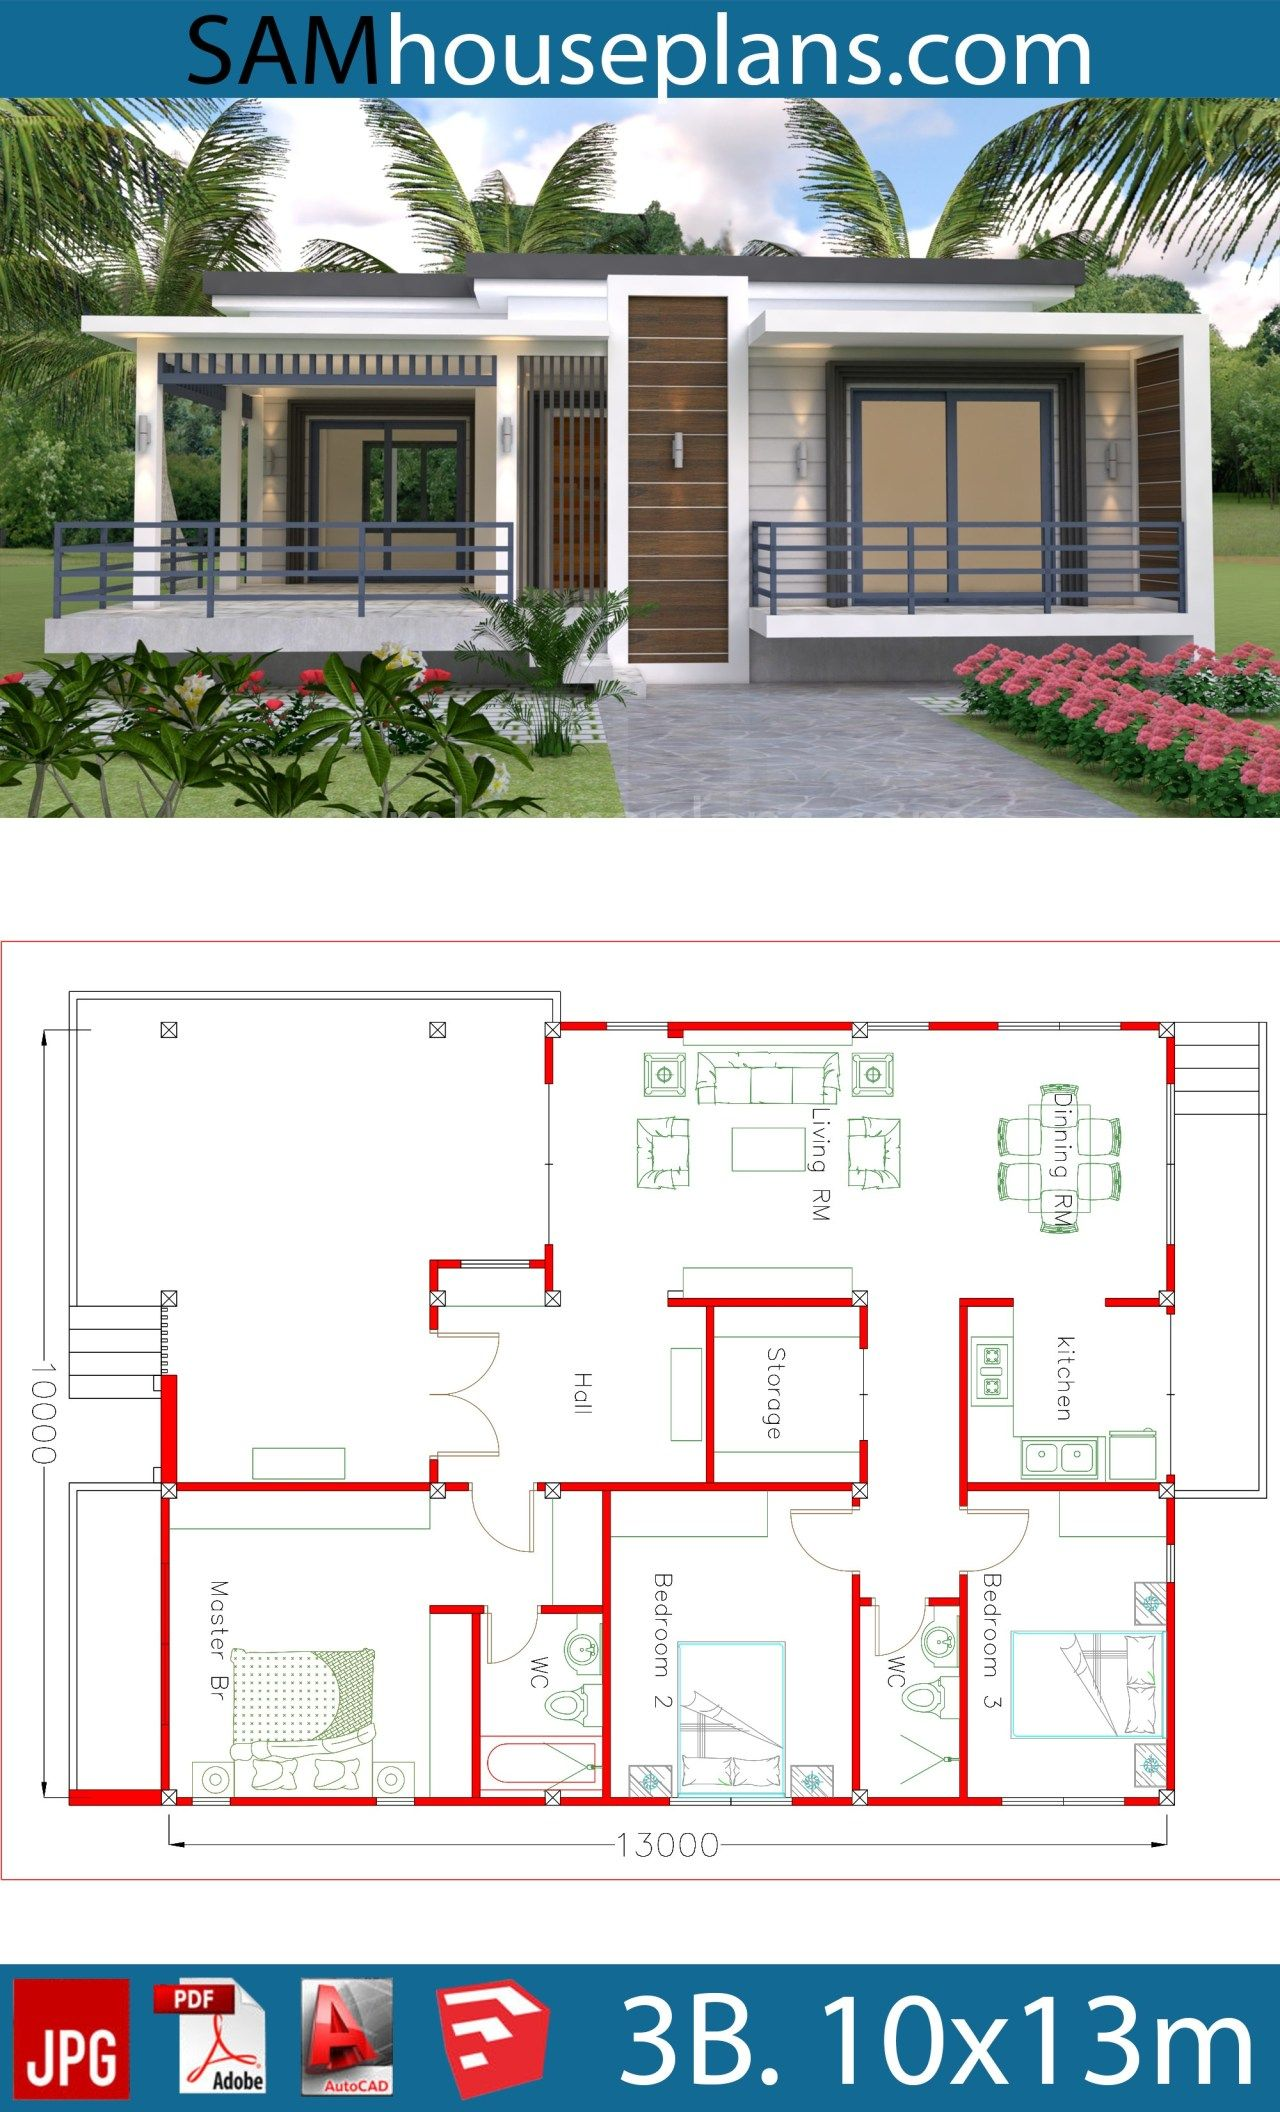 House Plans 10x13m With 3 Bedrooms Sam House Plans Beautiful House Plans Small Modern House Plans My House Plans